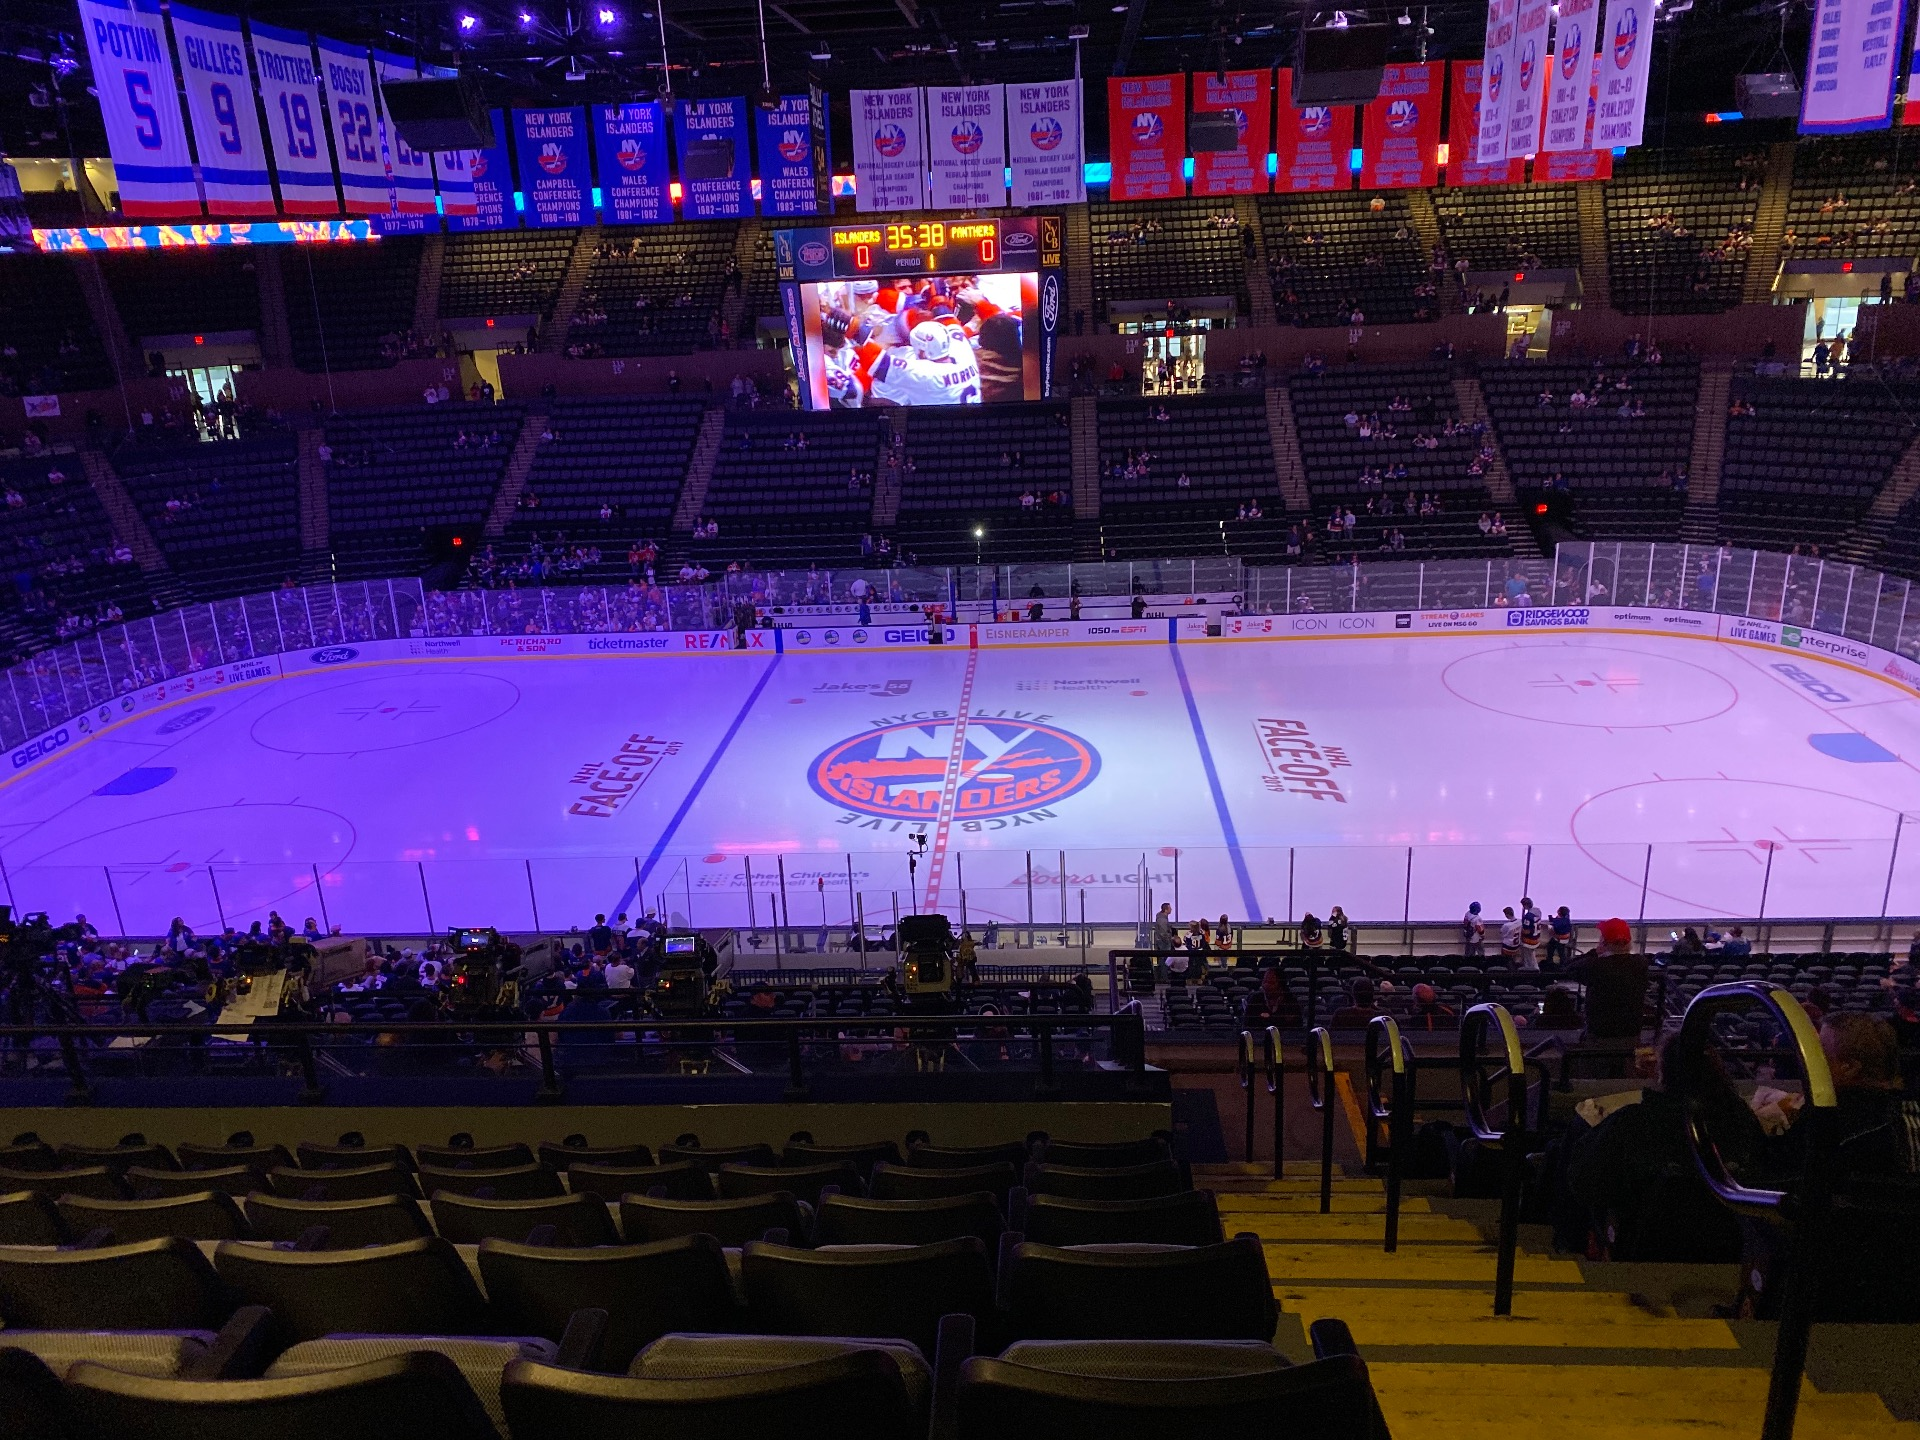 Nassau Veterans Memorial Coliseum Section 203 Row 11 Seat 1